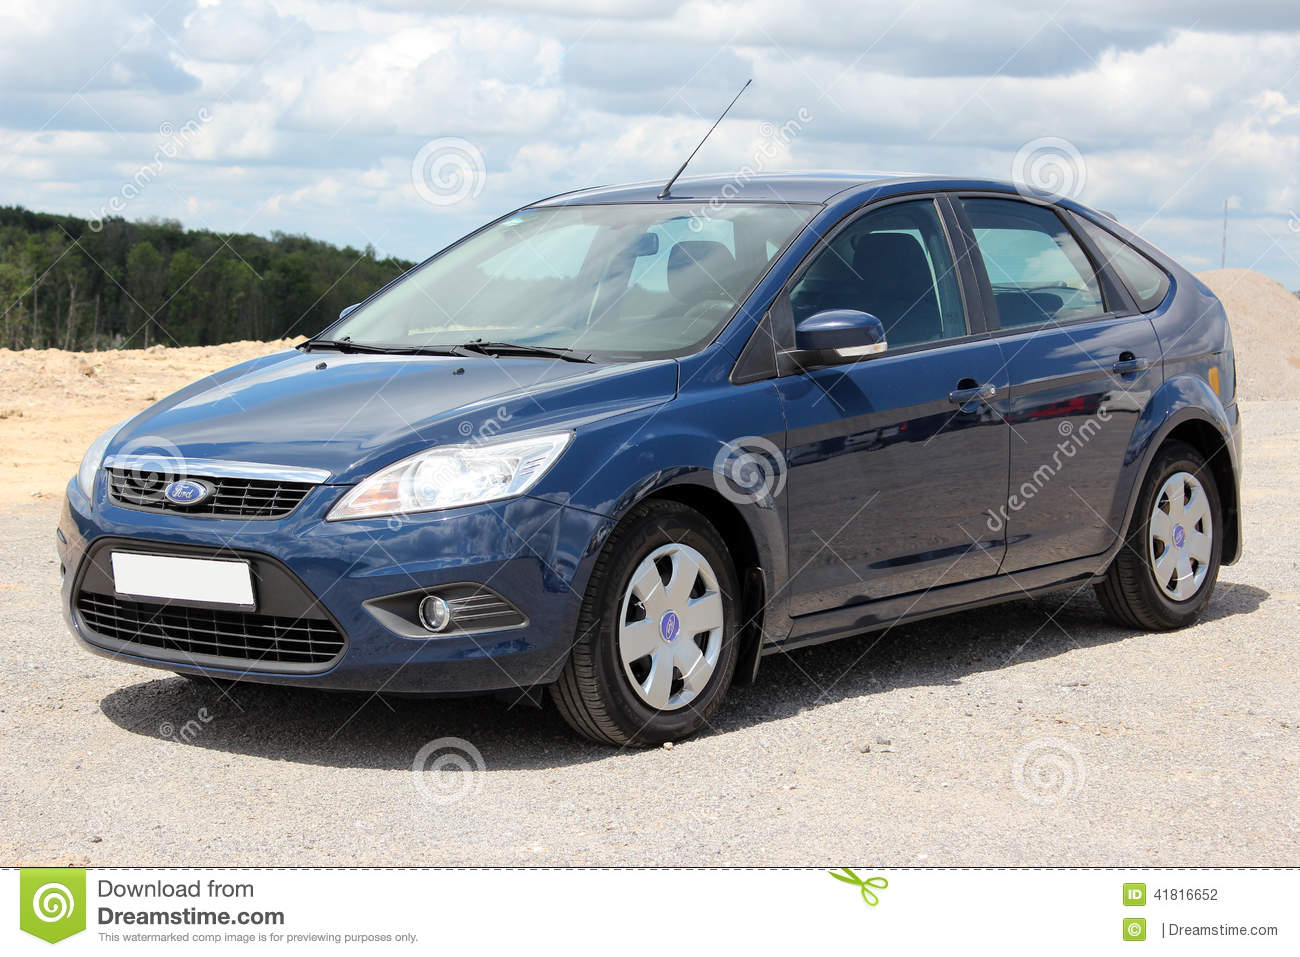 Ford focus 2008 blue